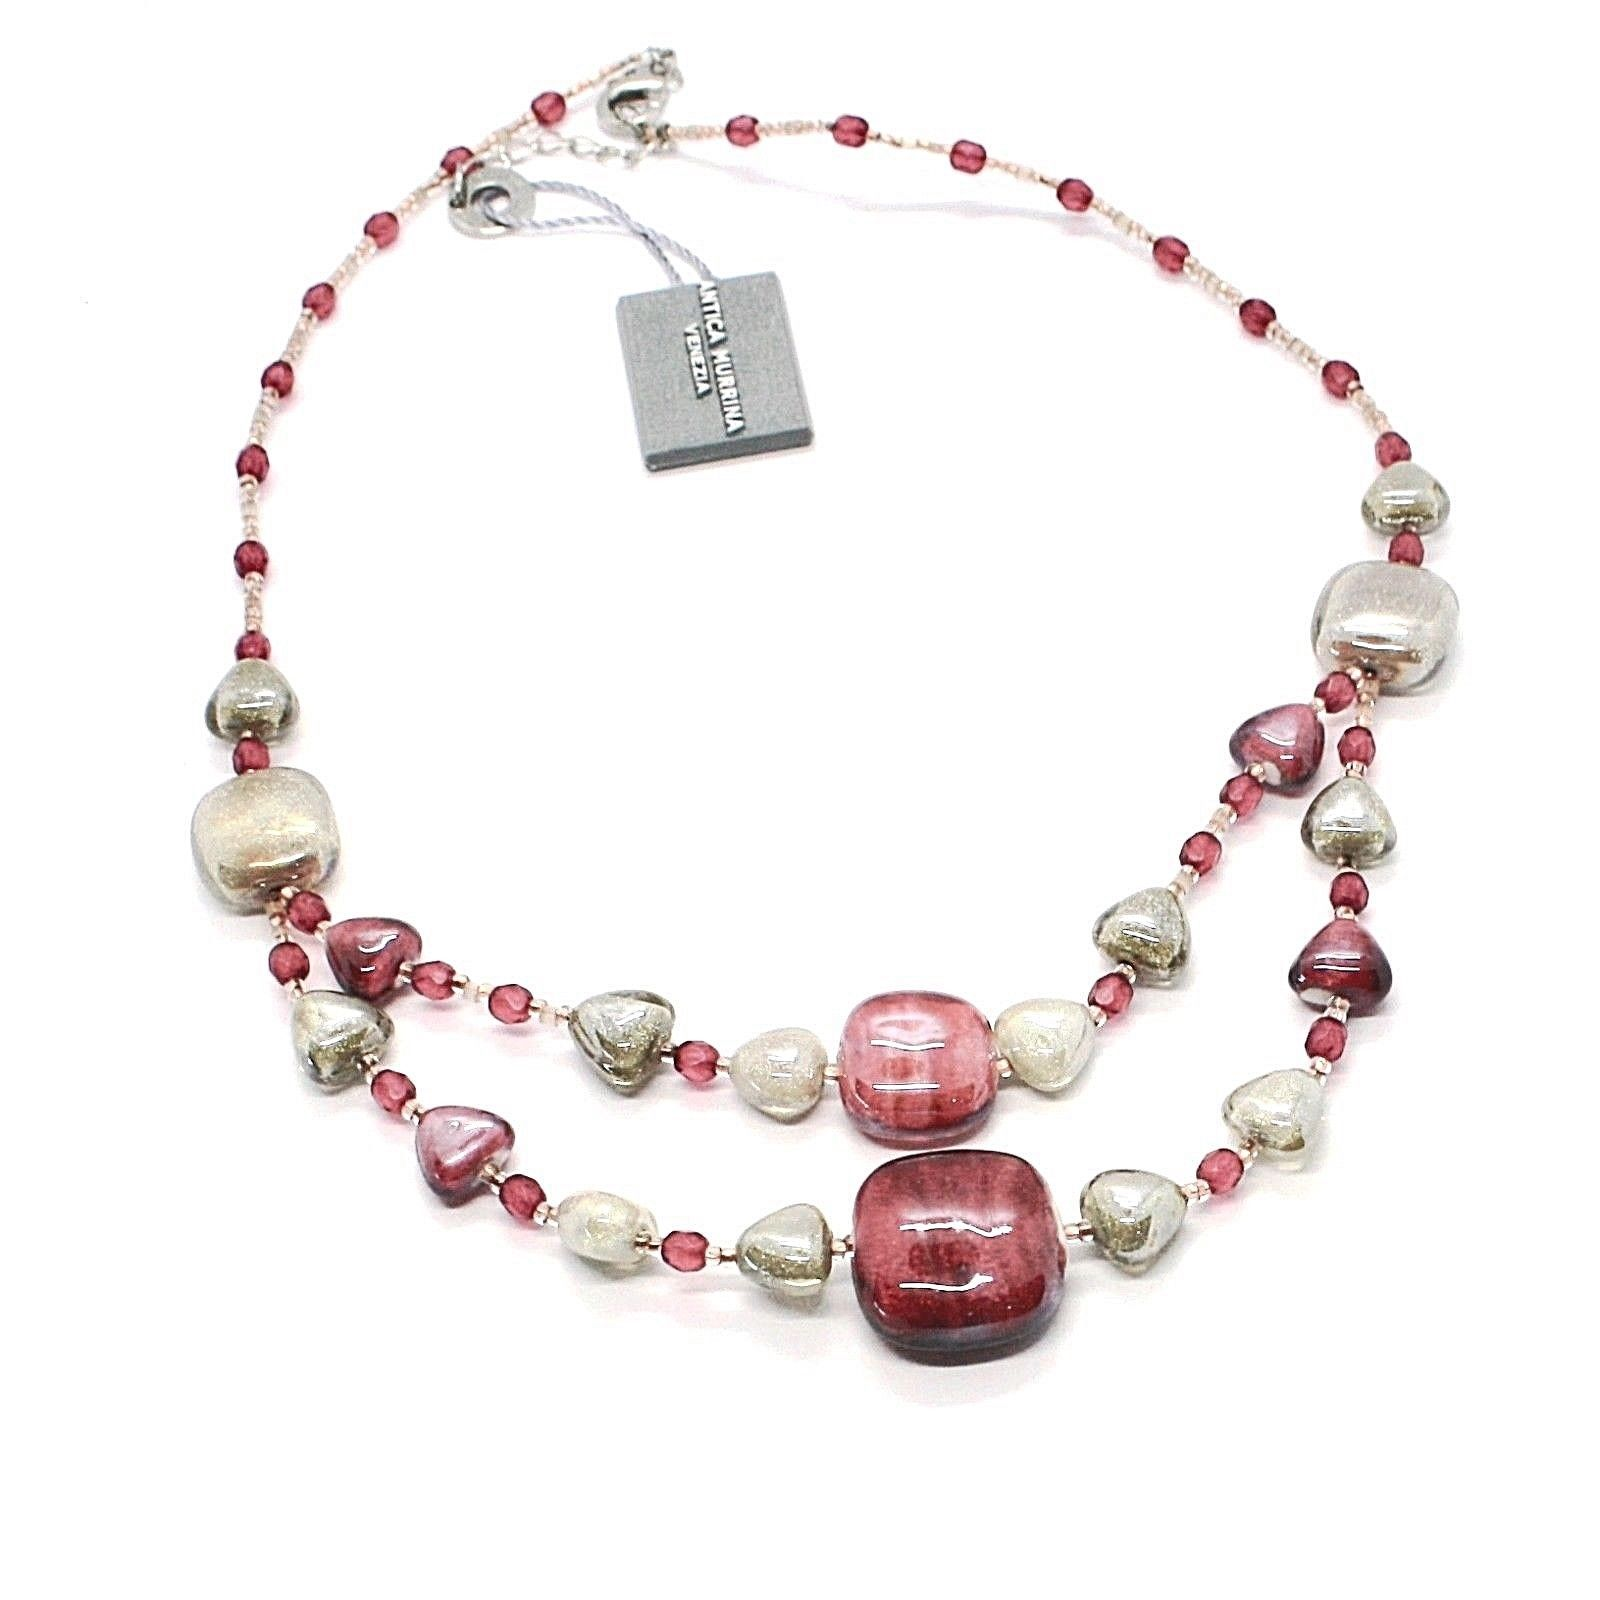 NECKLACE ANTICA MURRINA VENEZIA WITH MURANO GLASS RED BEIGE SAND CO930A11